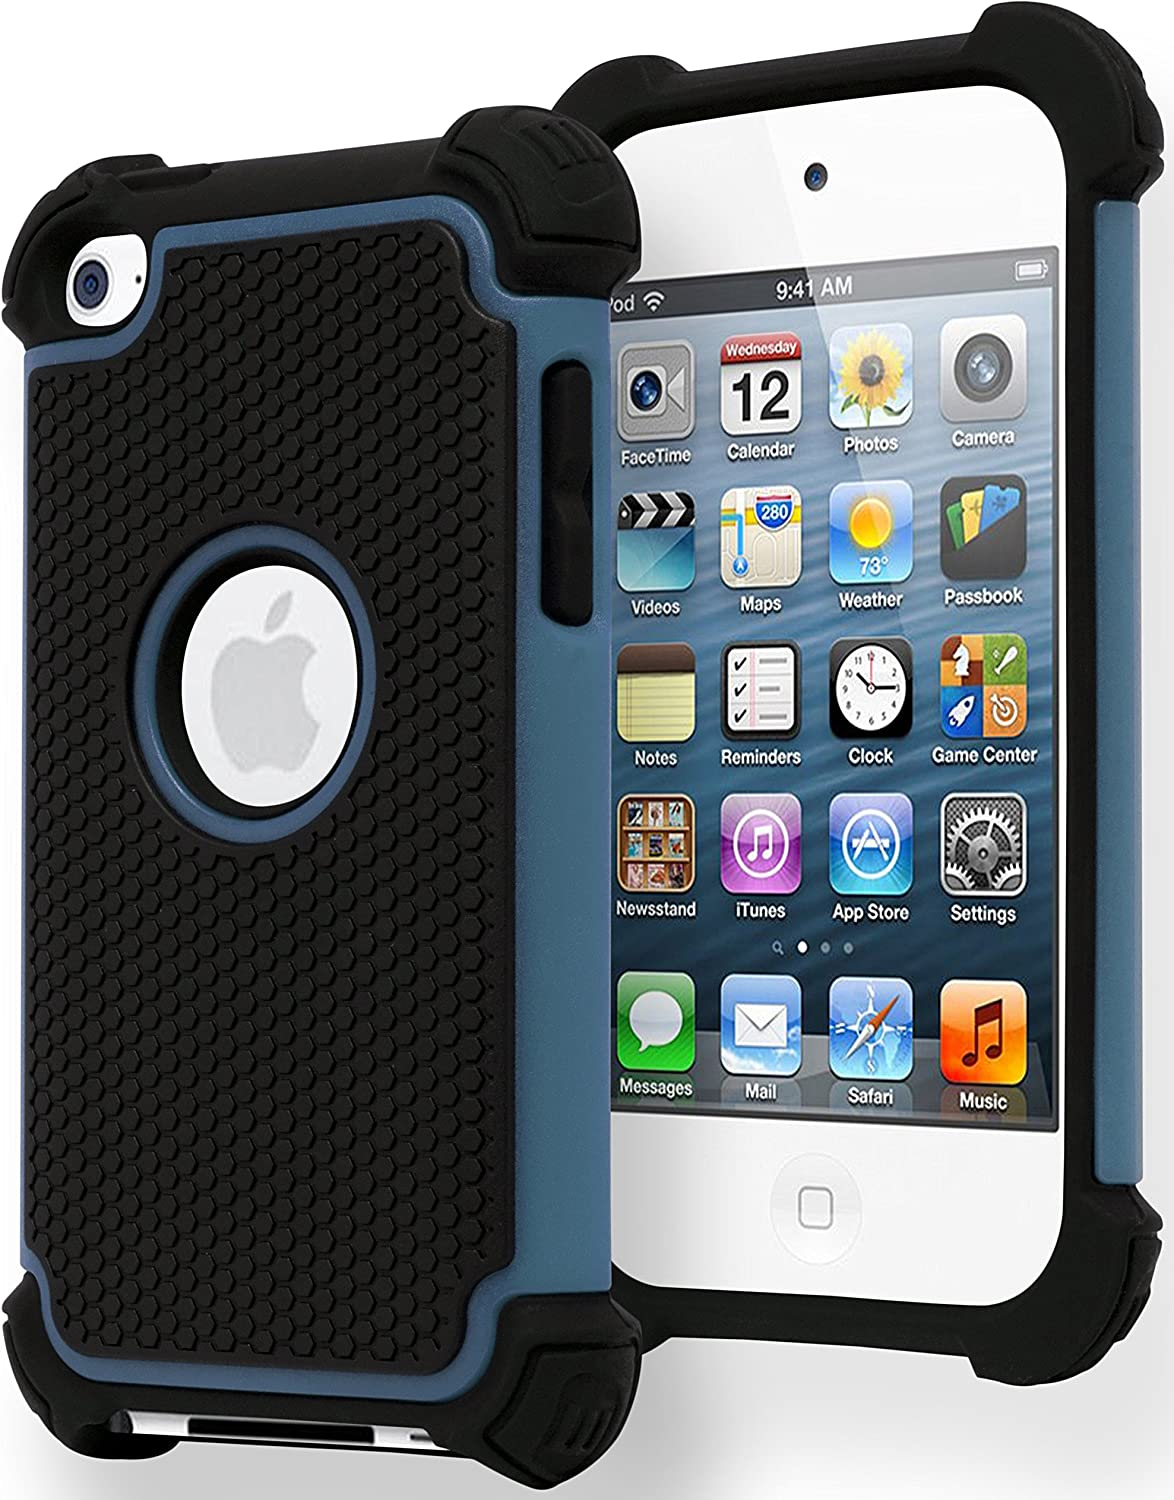 iPod Touch 4 Case, Bastex Hybrid Slim Fit Black Rubber Silicone Cover Hard Plastic Blue & Black Shock Case for Apple iPod Touch 4, 4th Generation